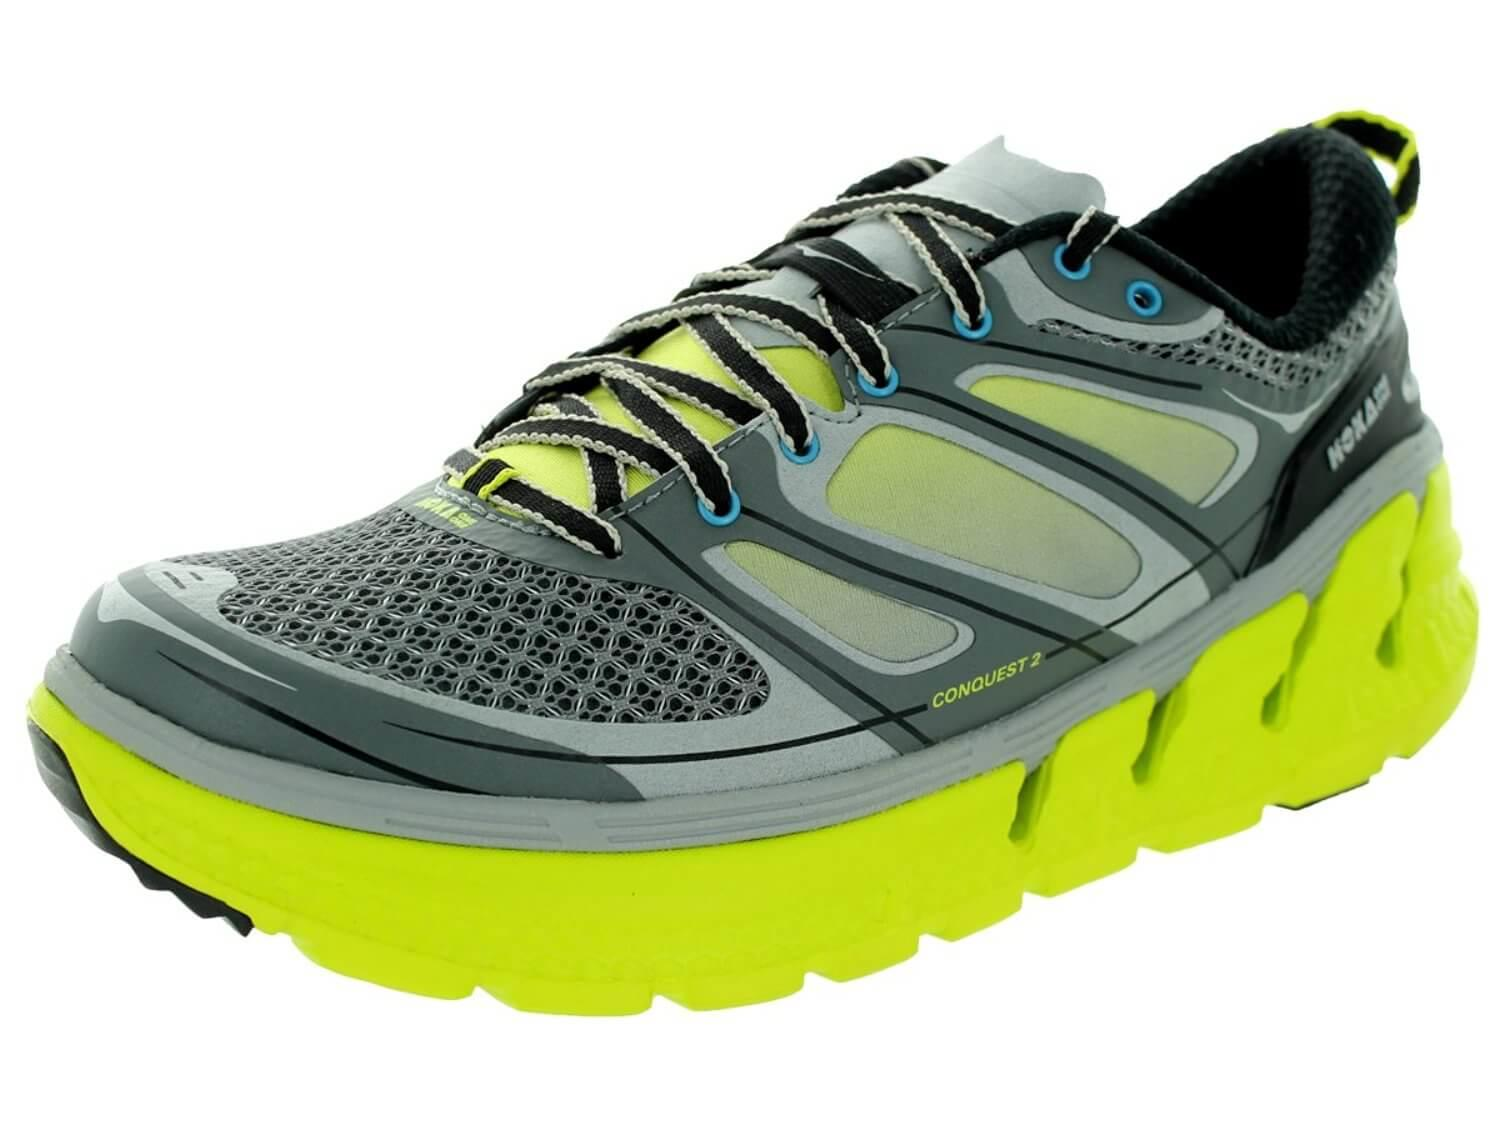 the Hoka One One Conquest 2 shown from the front/side